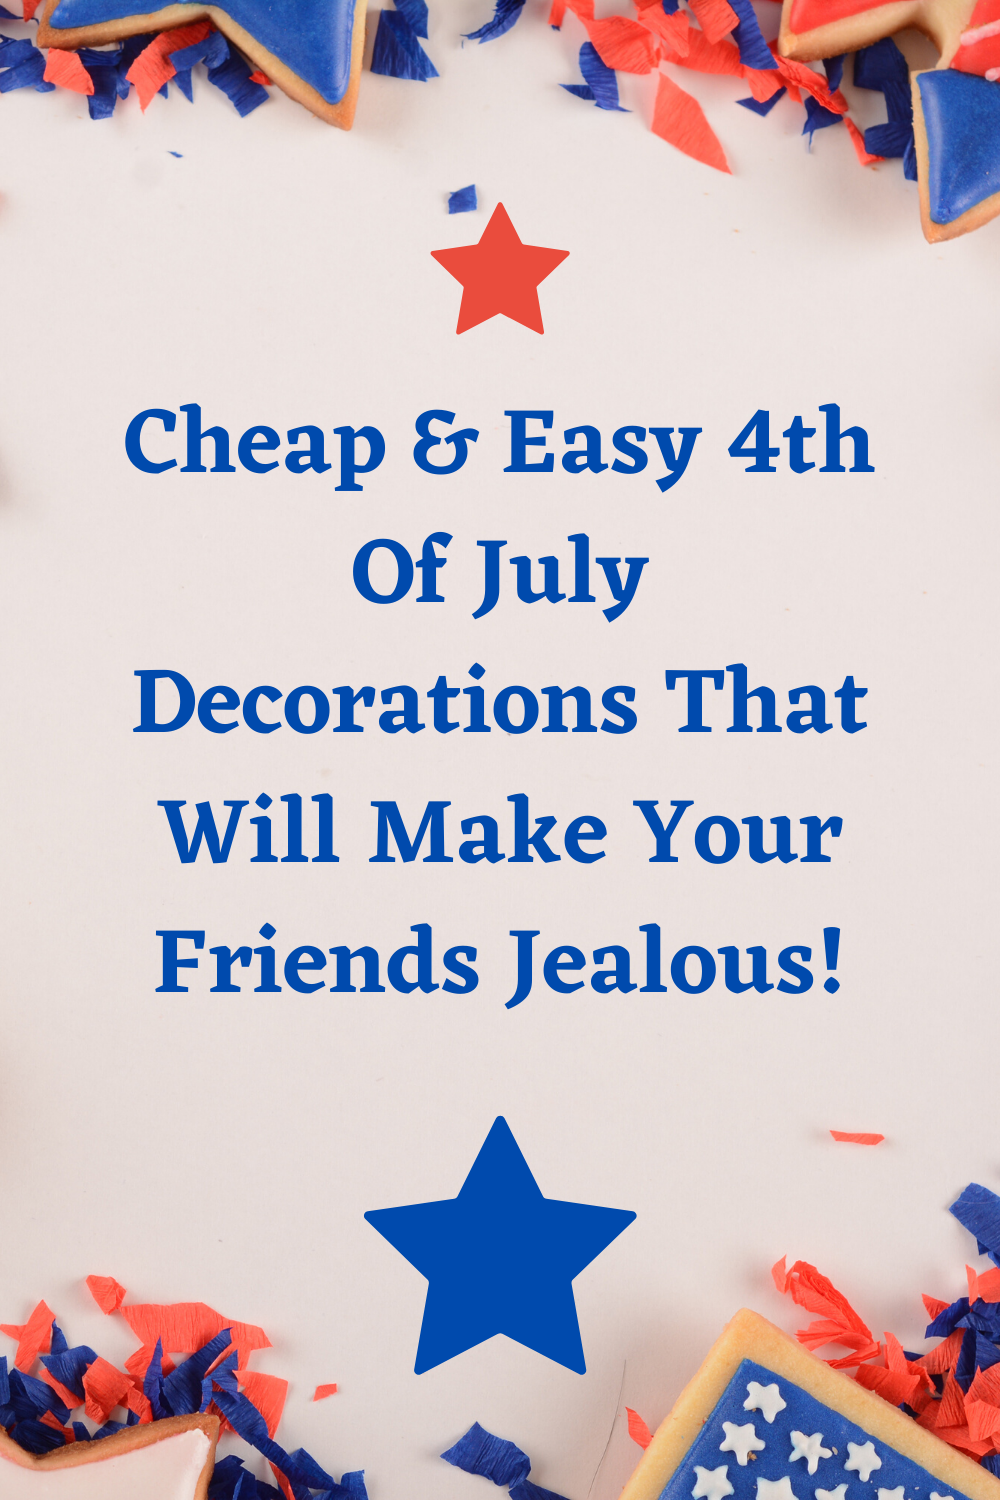 Cheap and easy 4th of July decorations that will leave you the envy of all of her friends this summer. #4thofjuly #fourthofjuly #4thofjulydecorations #fourthofjulydecorations #summer #fourthofjulyparty #4thofjulyparty #redwhiteandblue #patriotic